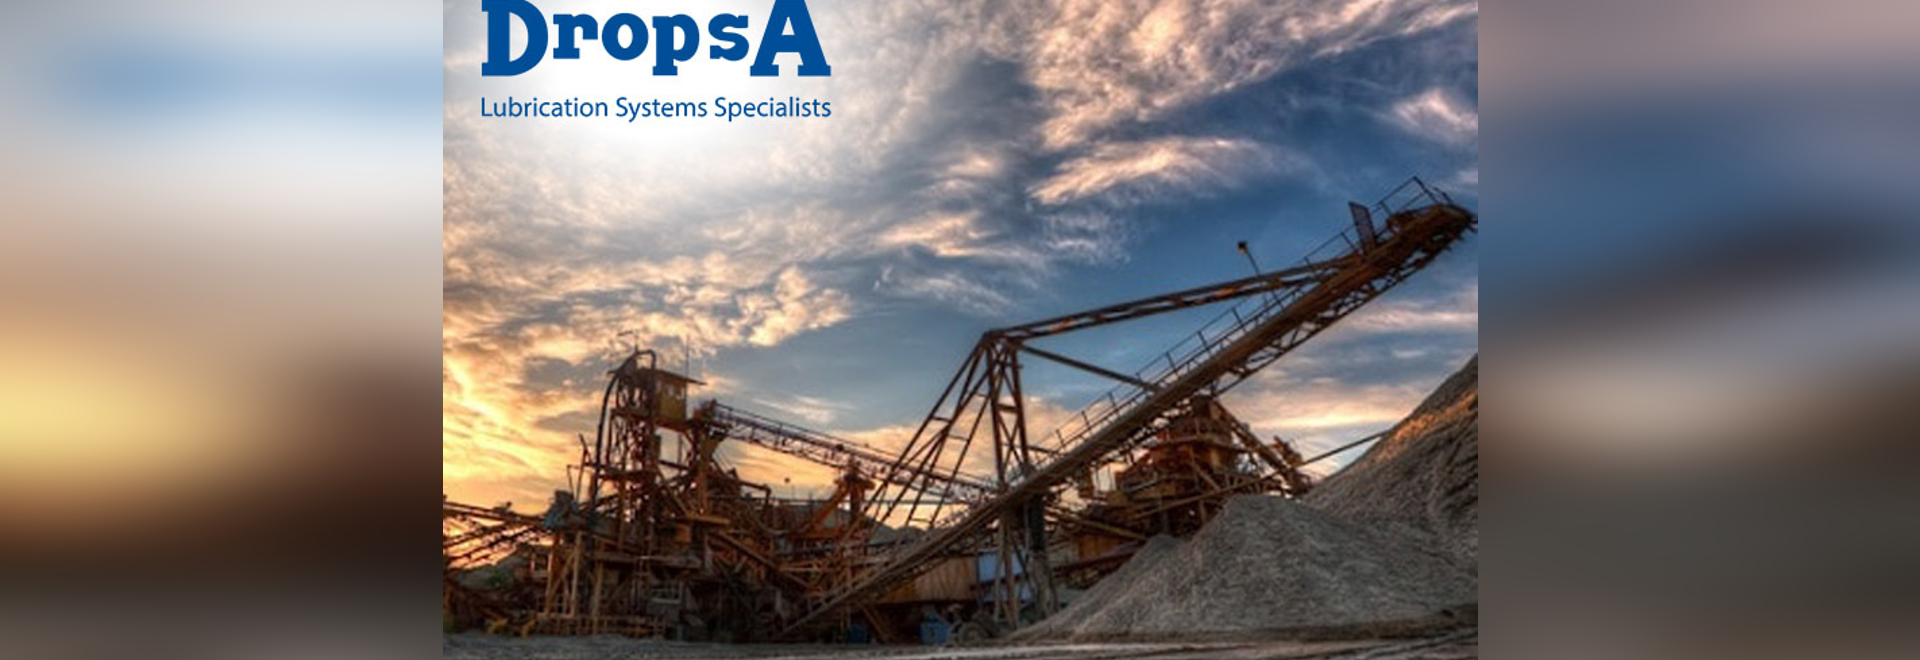 The mining industry and the lubrication of installations and vehicles